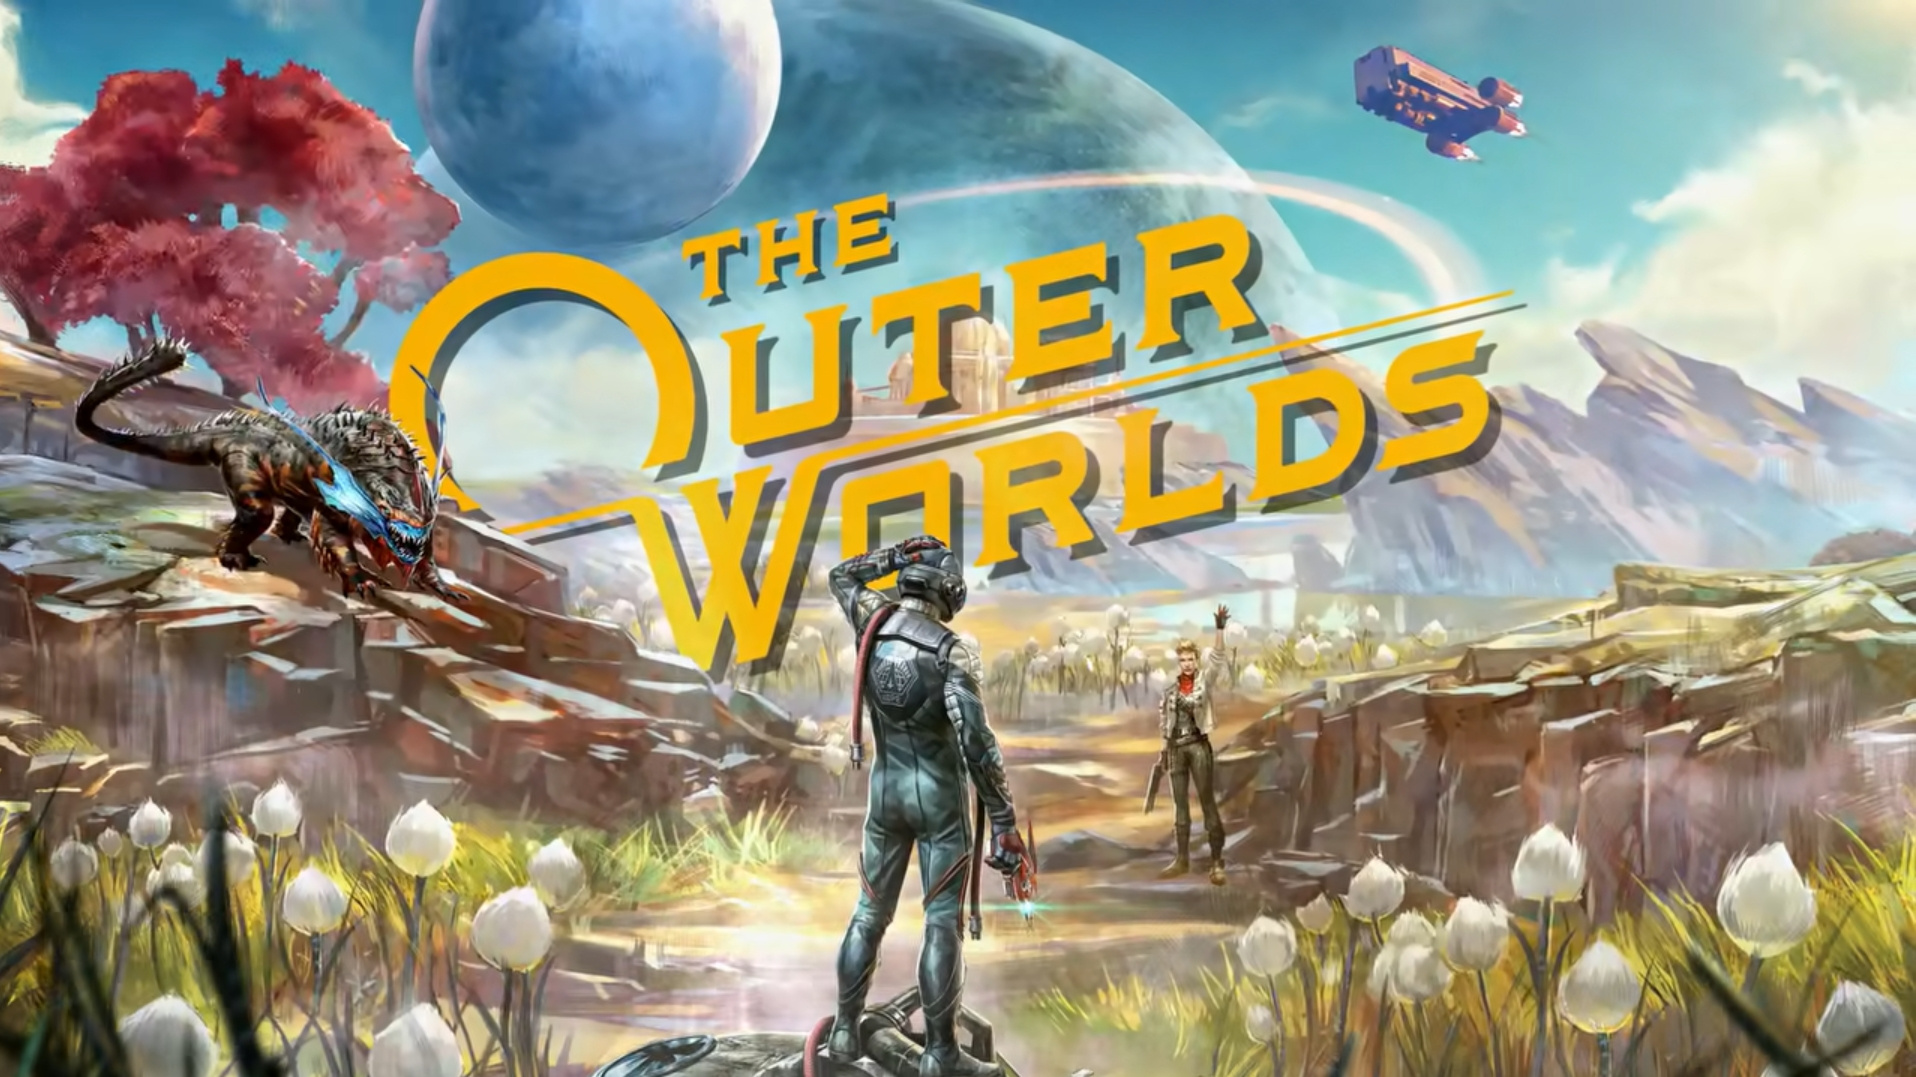 The Outer Worlds For Nintendo Switch Gets Smaller Release Date Window